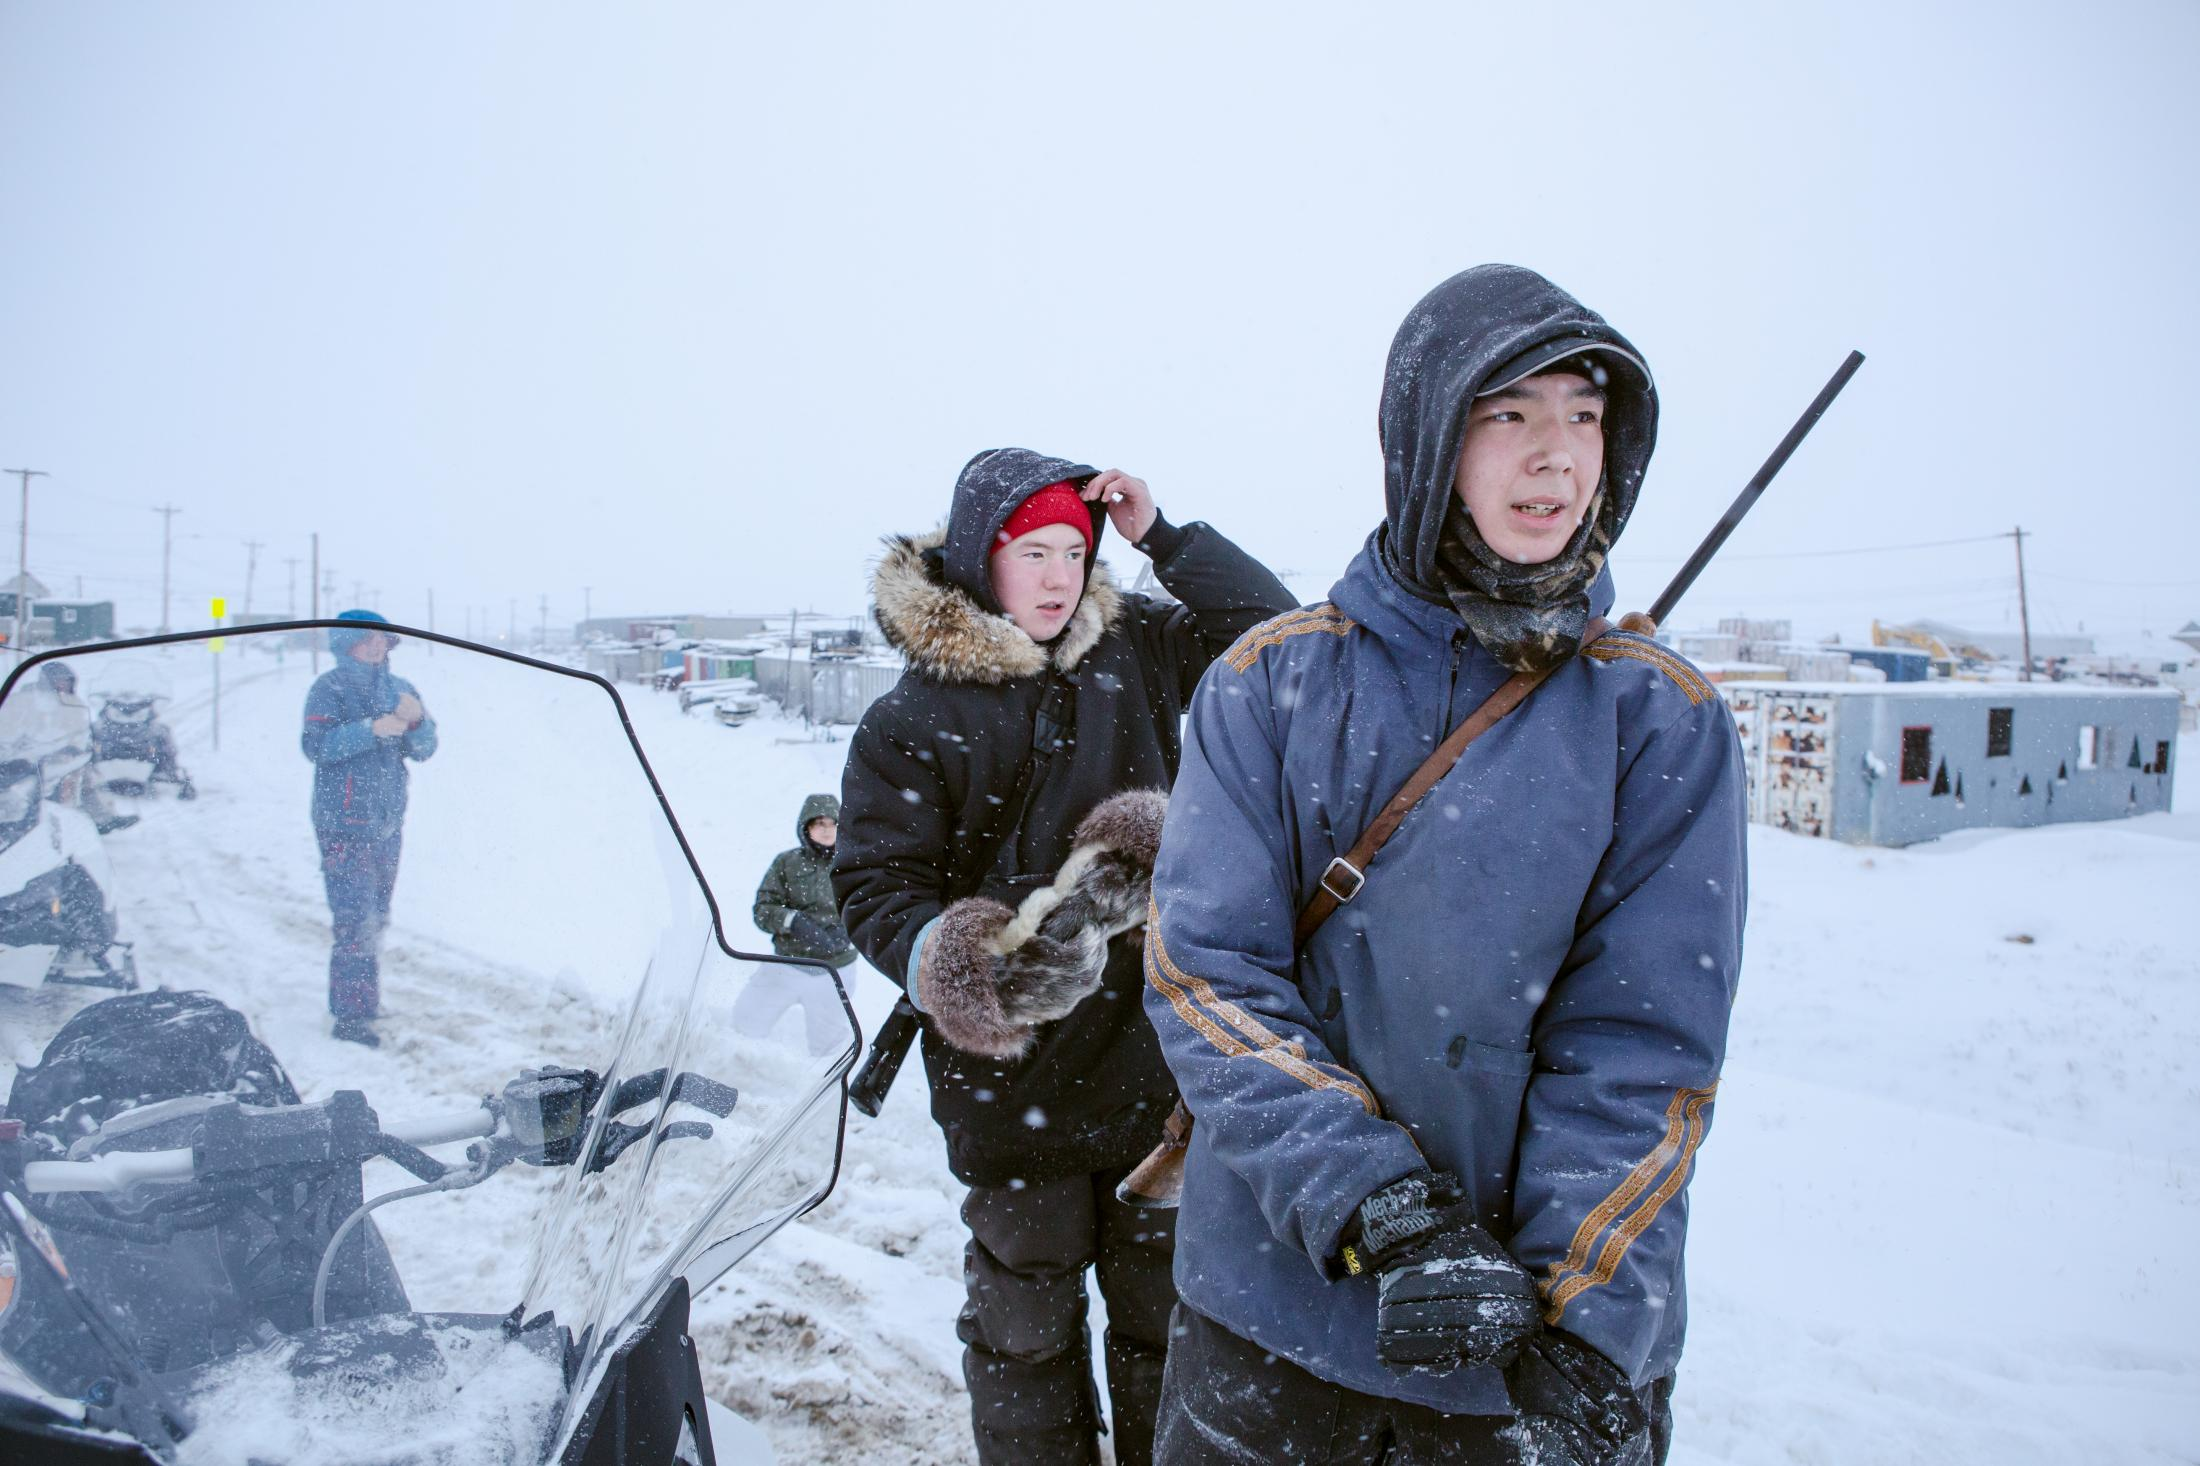 Jack Allakariallak and Simaniq Kootoo watch as older hunters recover a snowmobile from the ditch.